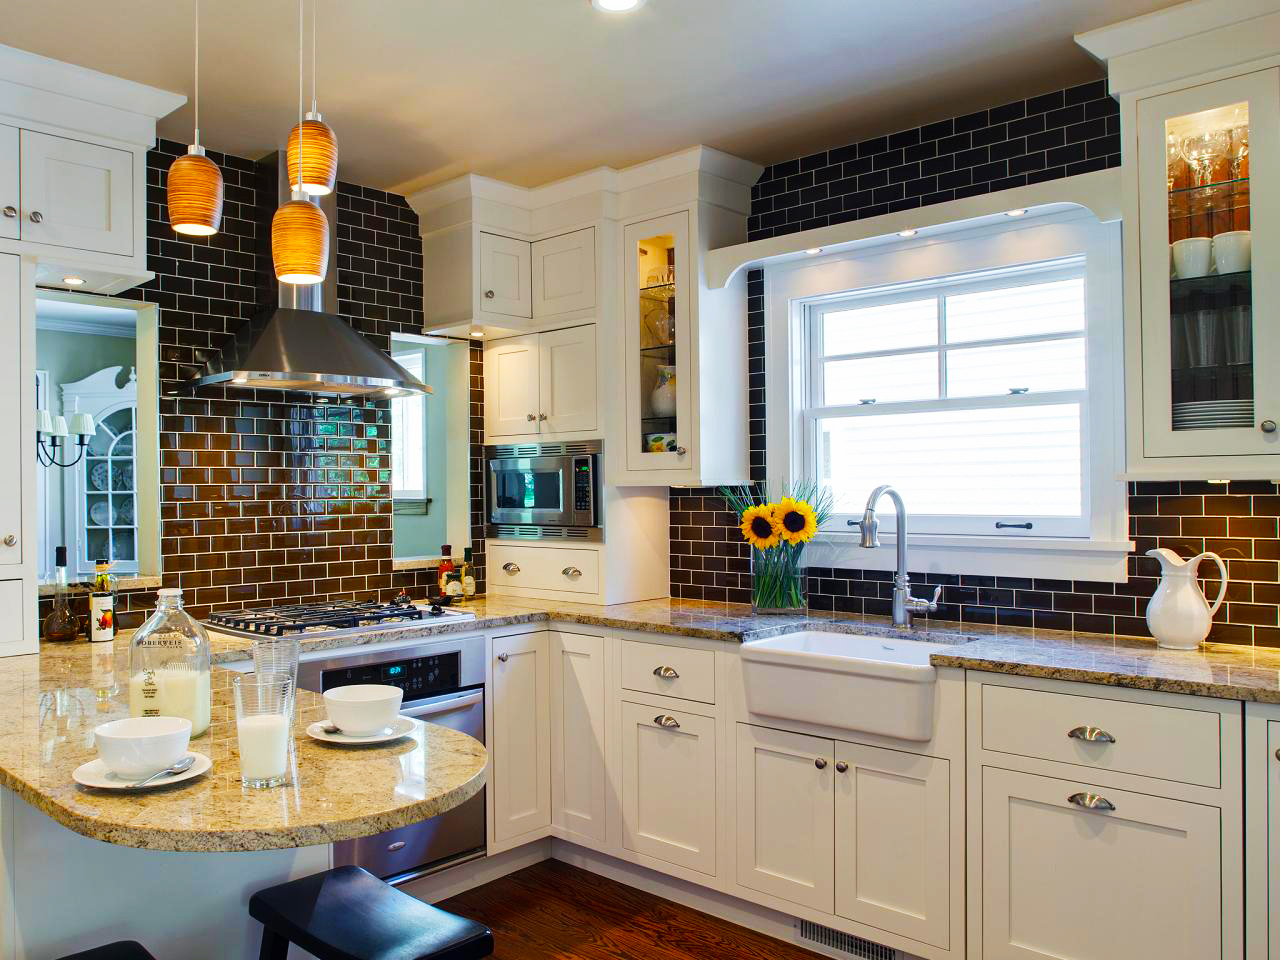 glass kitchen tile backsplash cost to remodel kitchen backsplash designs roy home design 3802